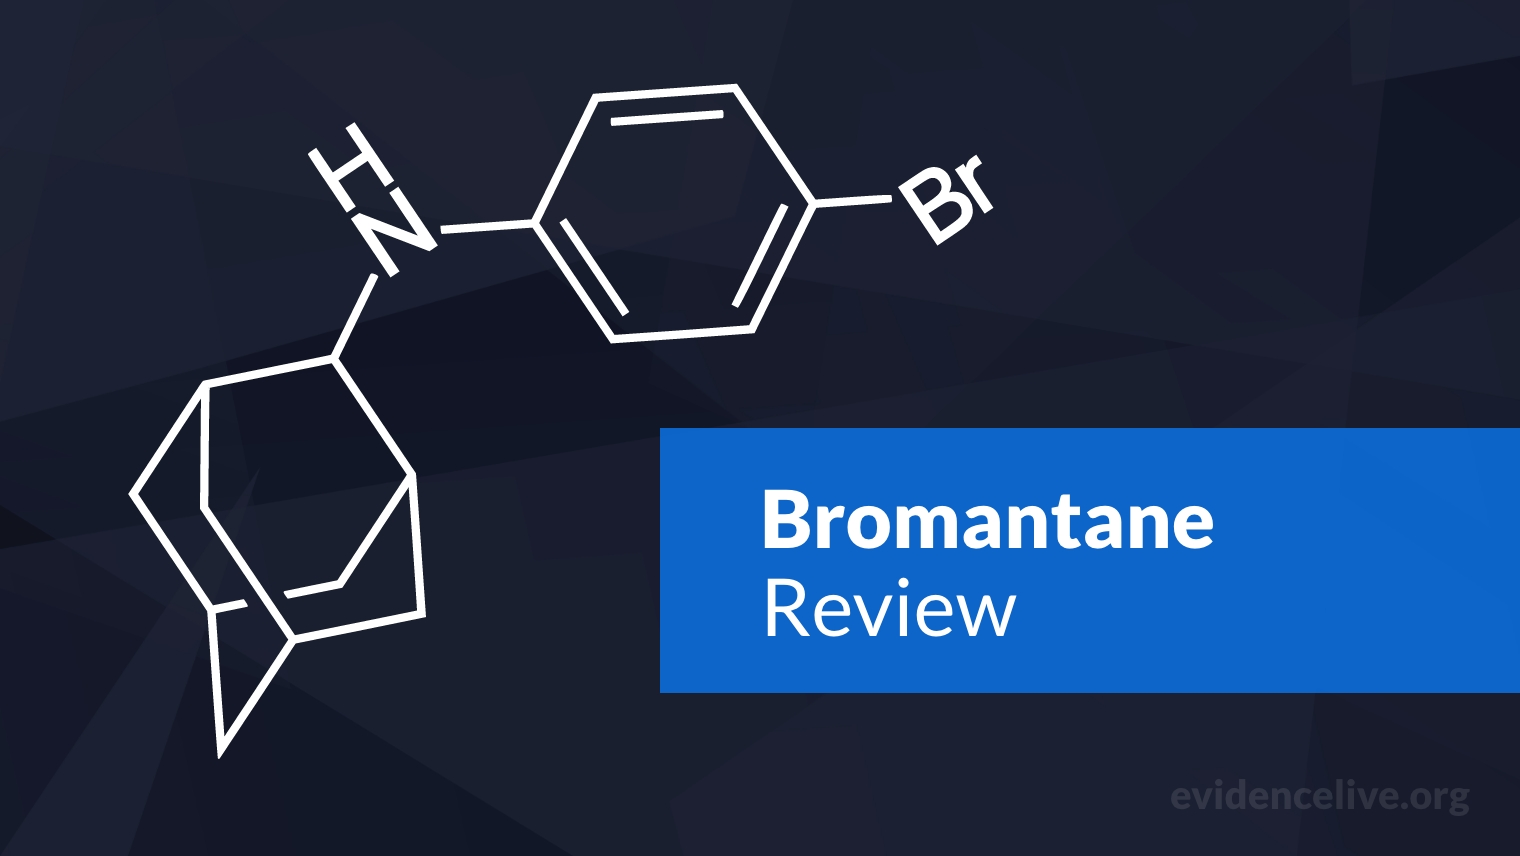 Bromantane: Benefits, Uses, Dosage, and Side Effects